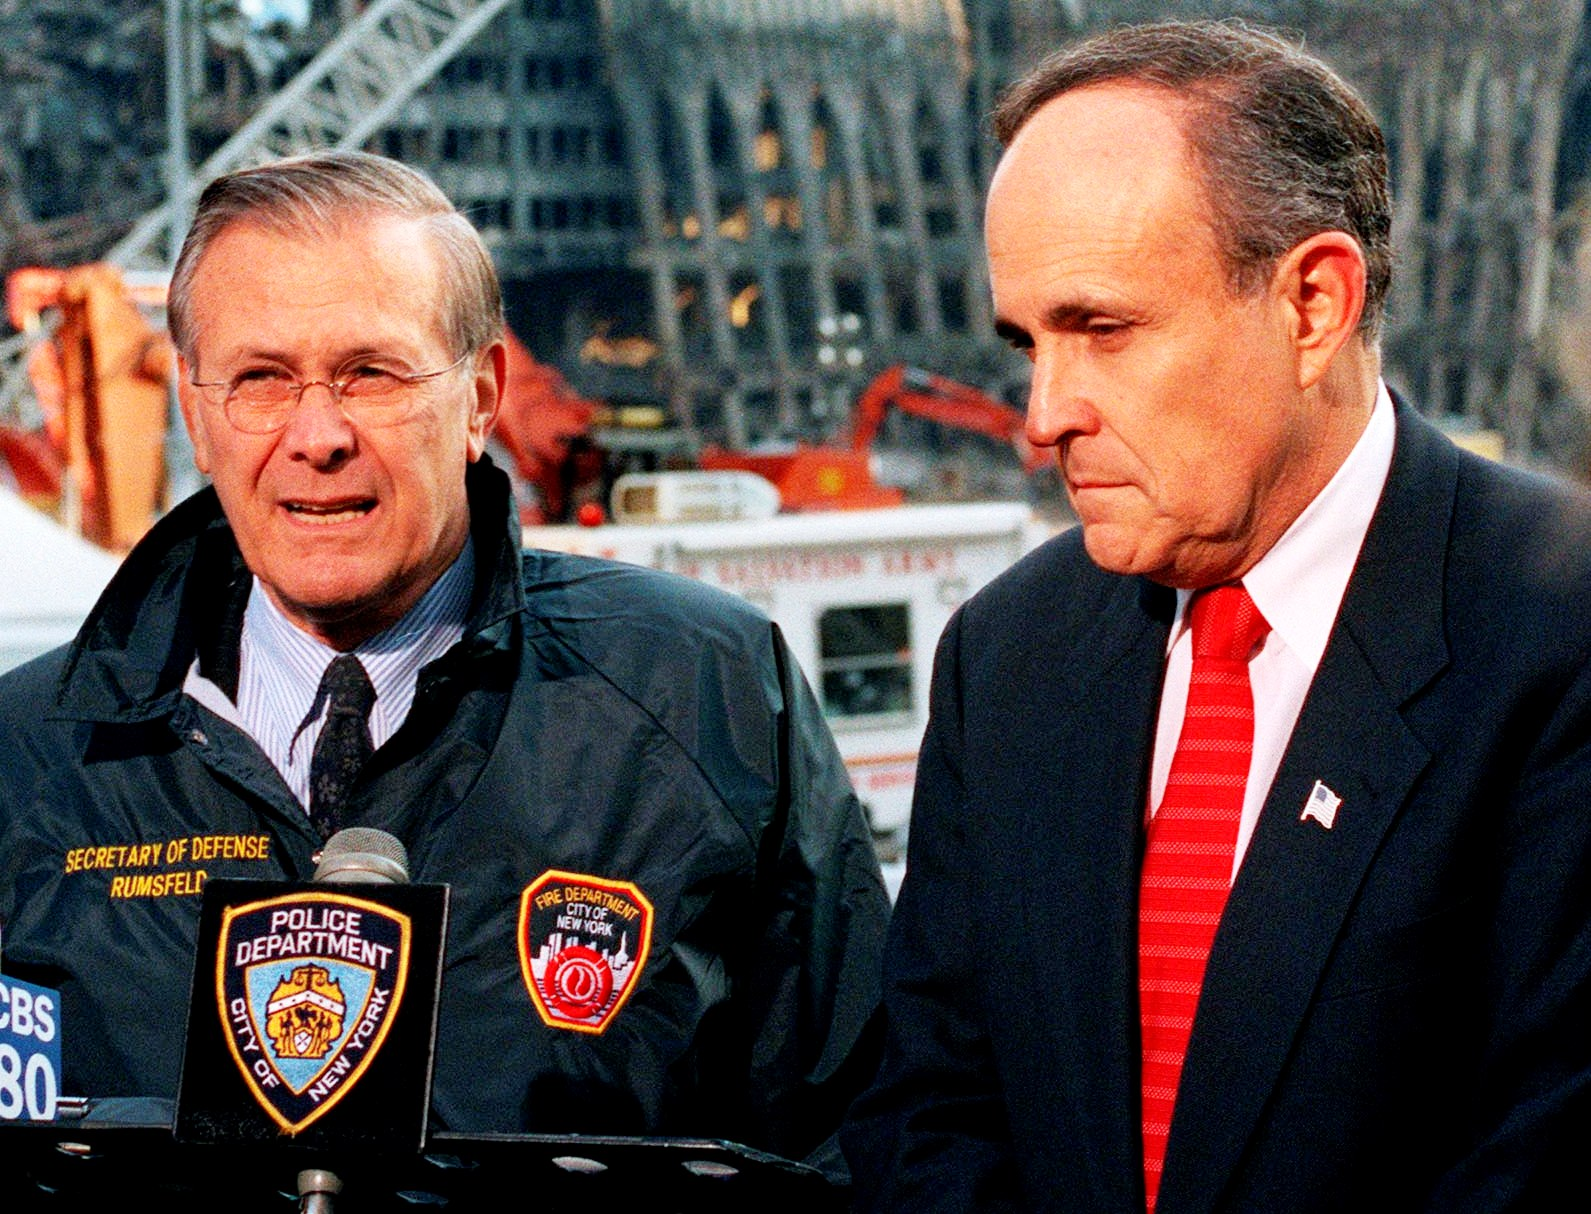 https://upload.wikimedia.org/wikipedia/commons/1/18/Rumsfeld_and_Giuliani_at_Ground_Zero_cropped.jpg